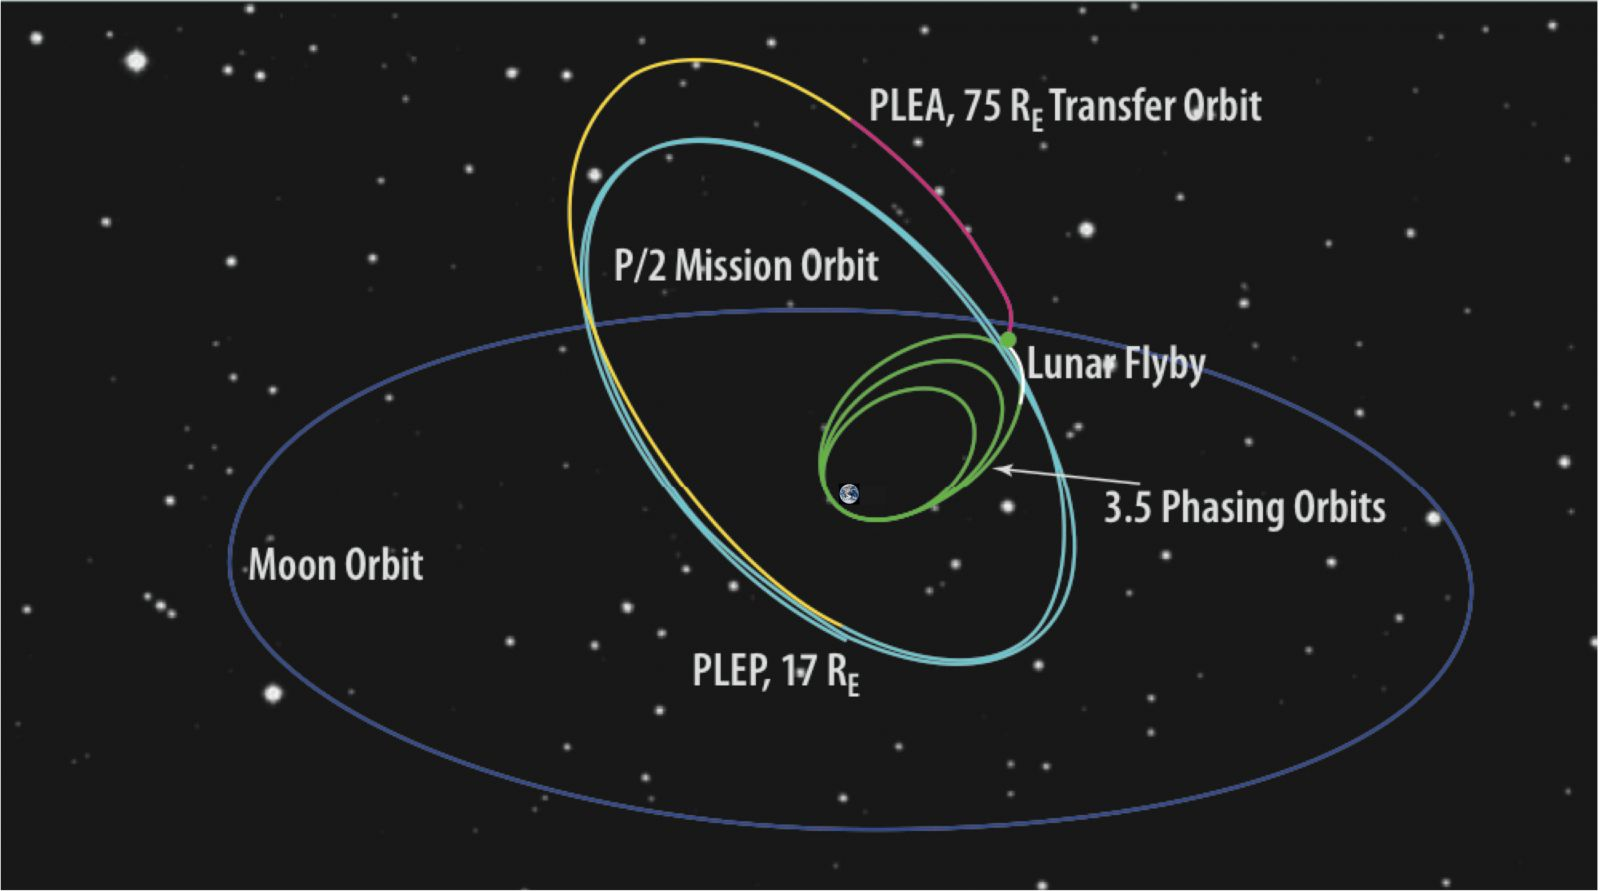 The flight path from its initial insertion orbit to its final 2:1 lunar resonance orbit. Image Credit: NASA